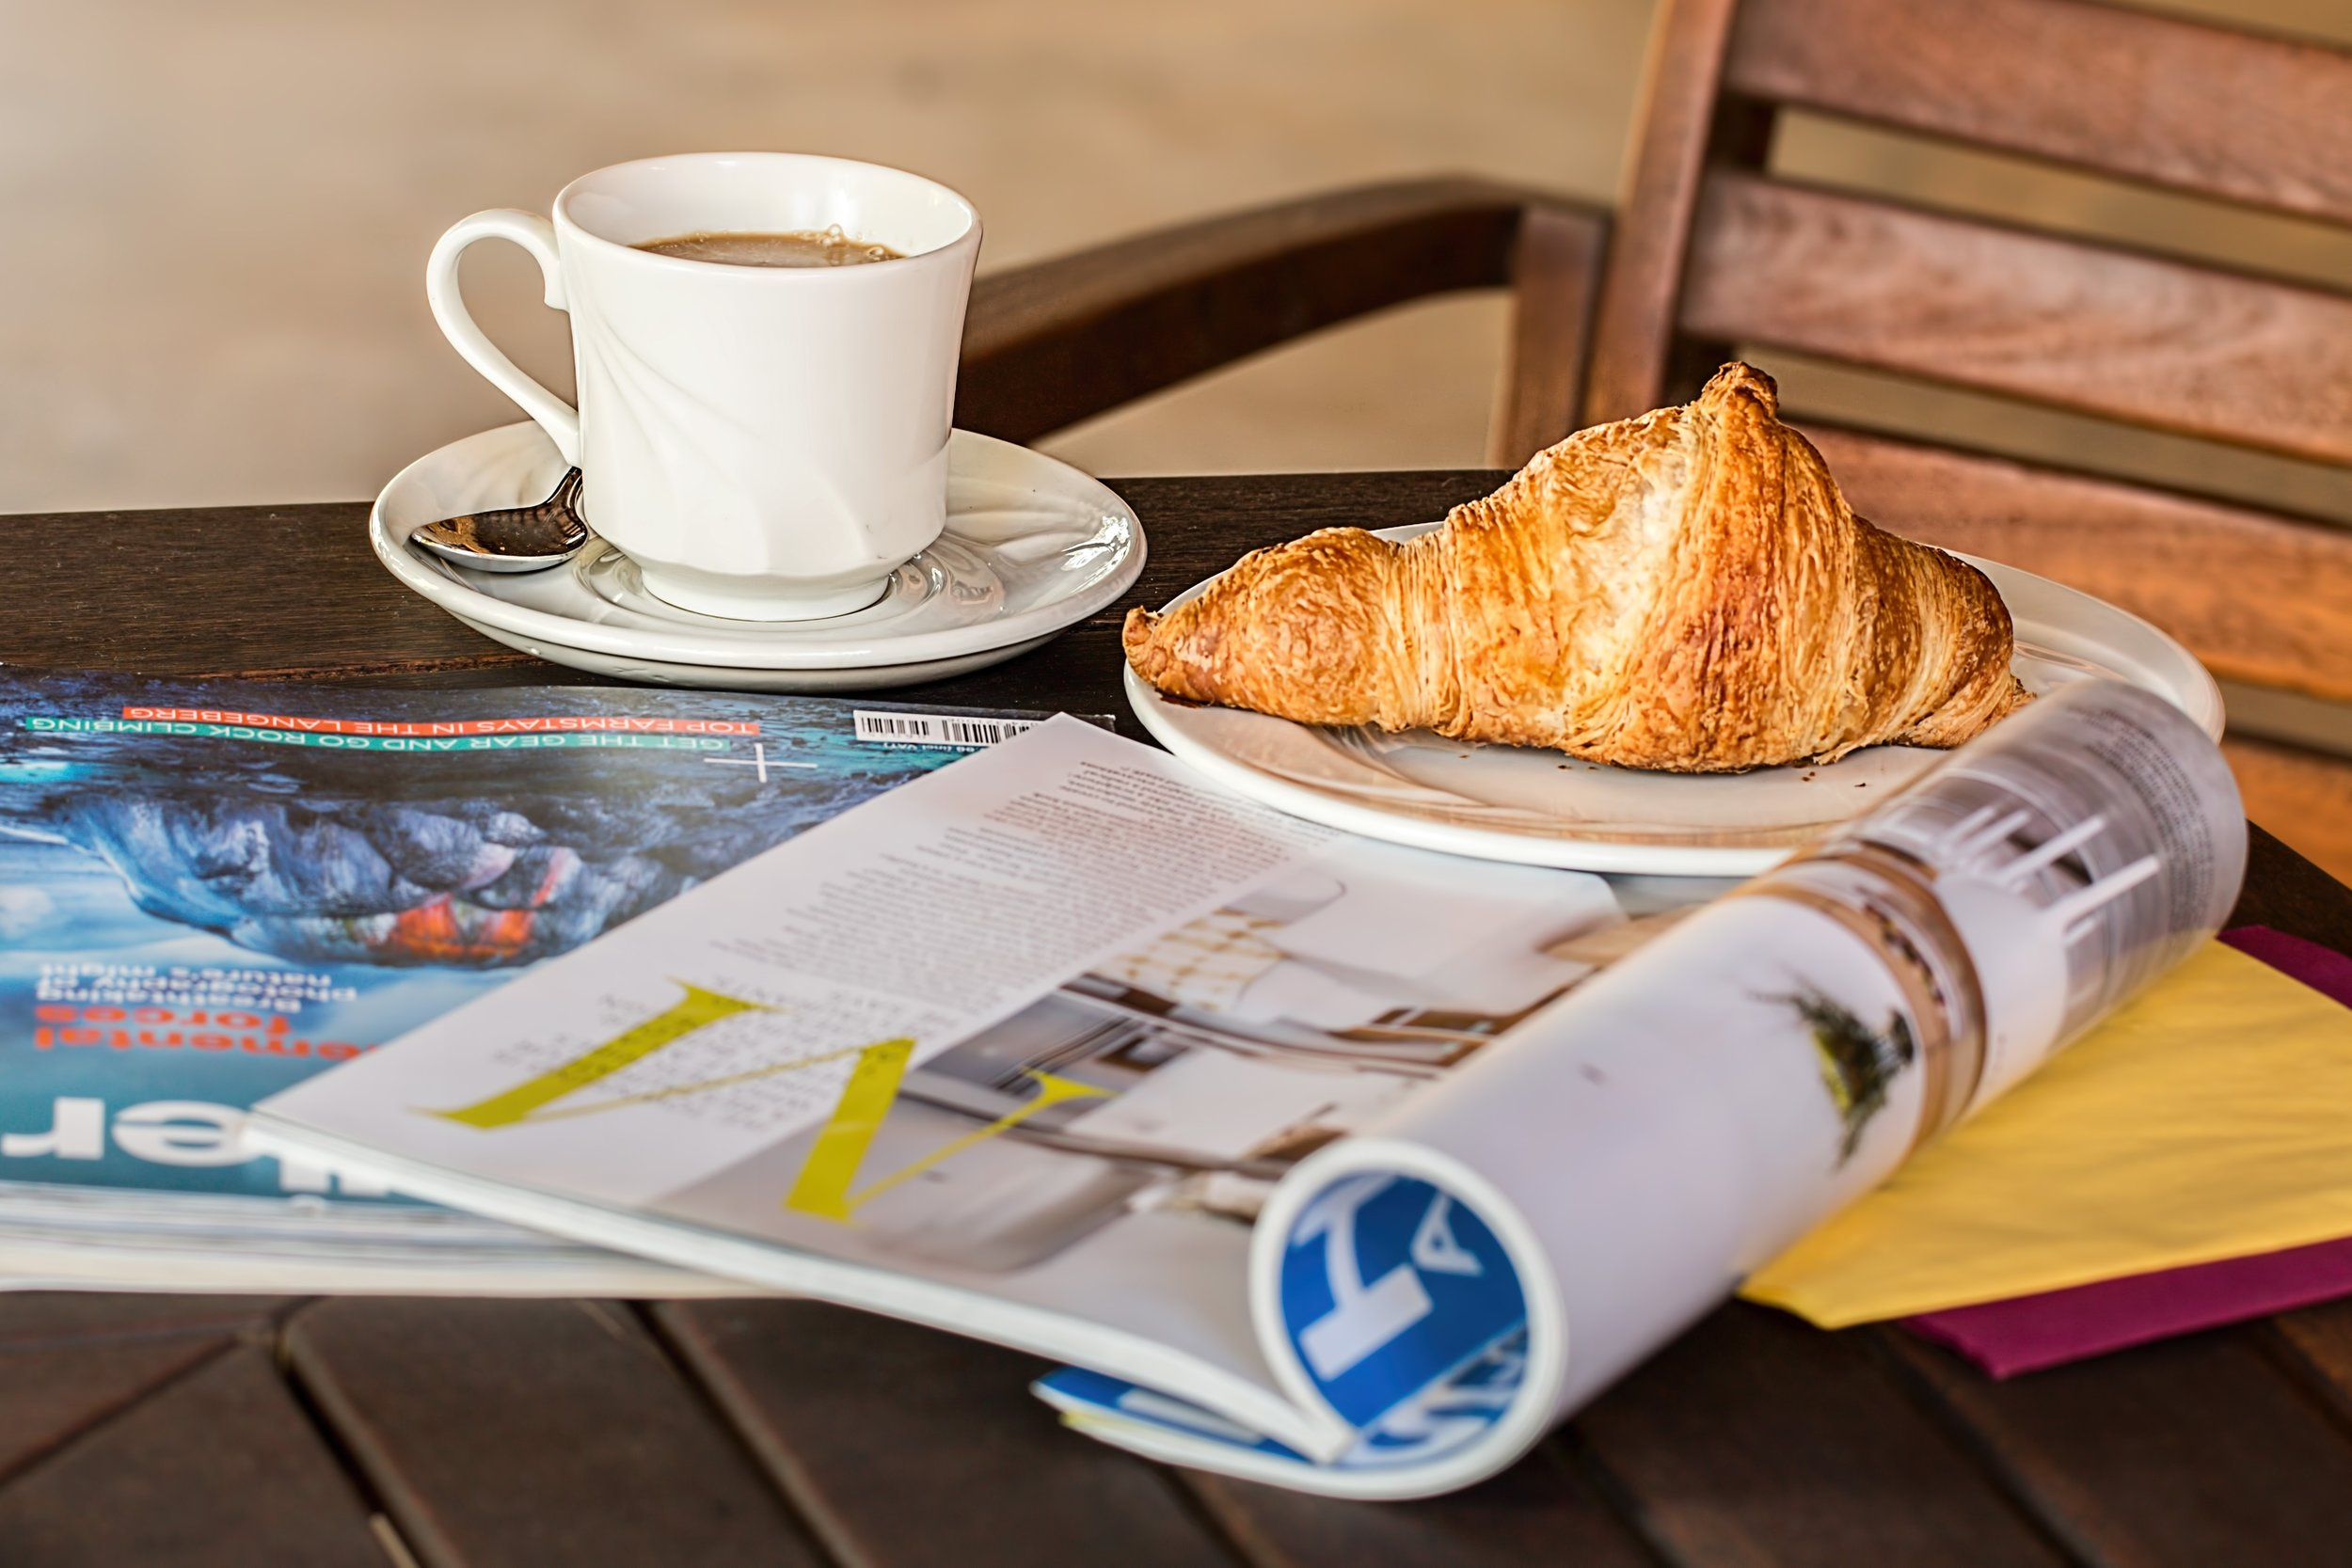 Croissant. Coffee. Reading. Yes, please!